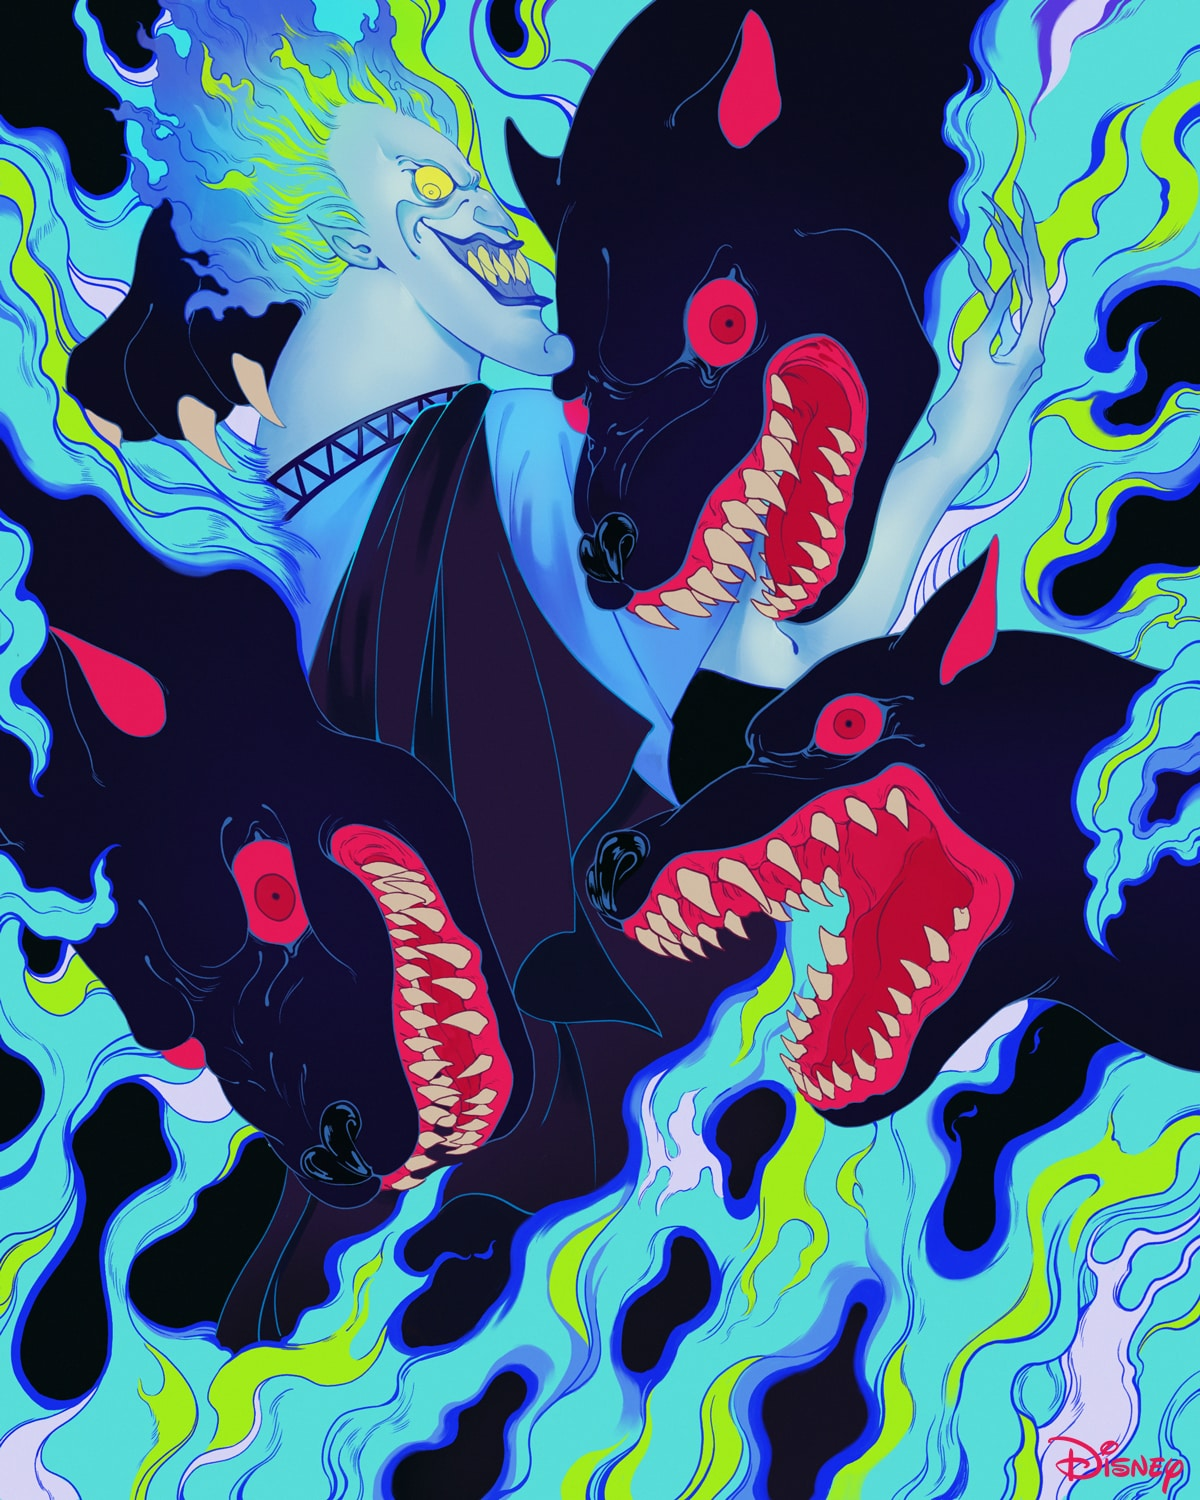 Hades with Cerberus engulfed in blue and green flames